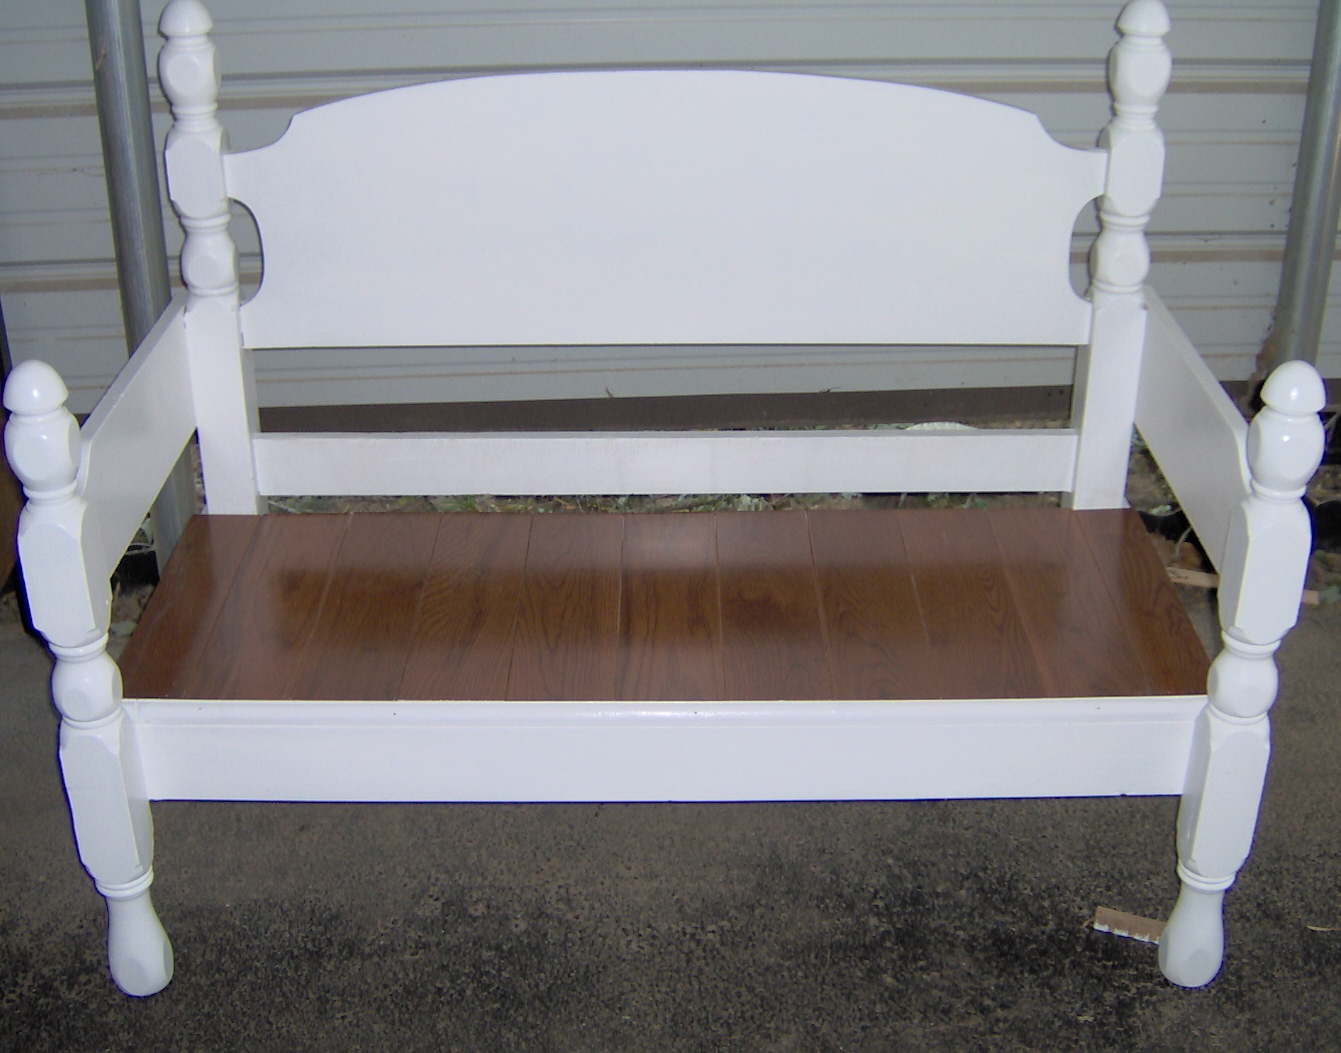 Four Poster Headboard Bench Easy My Repurposed Life